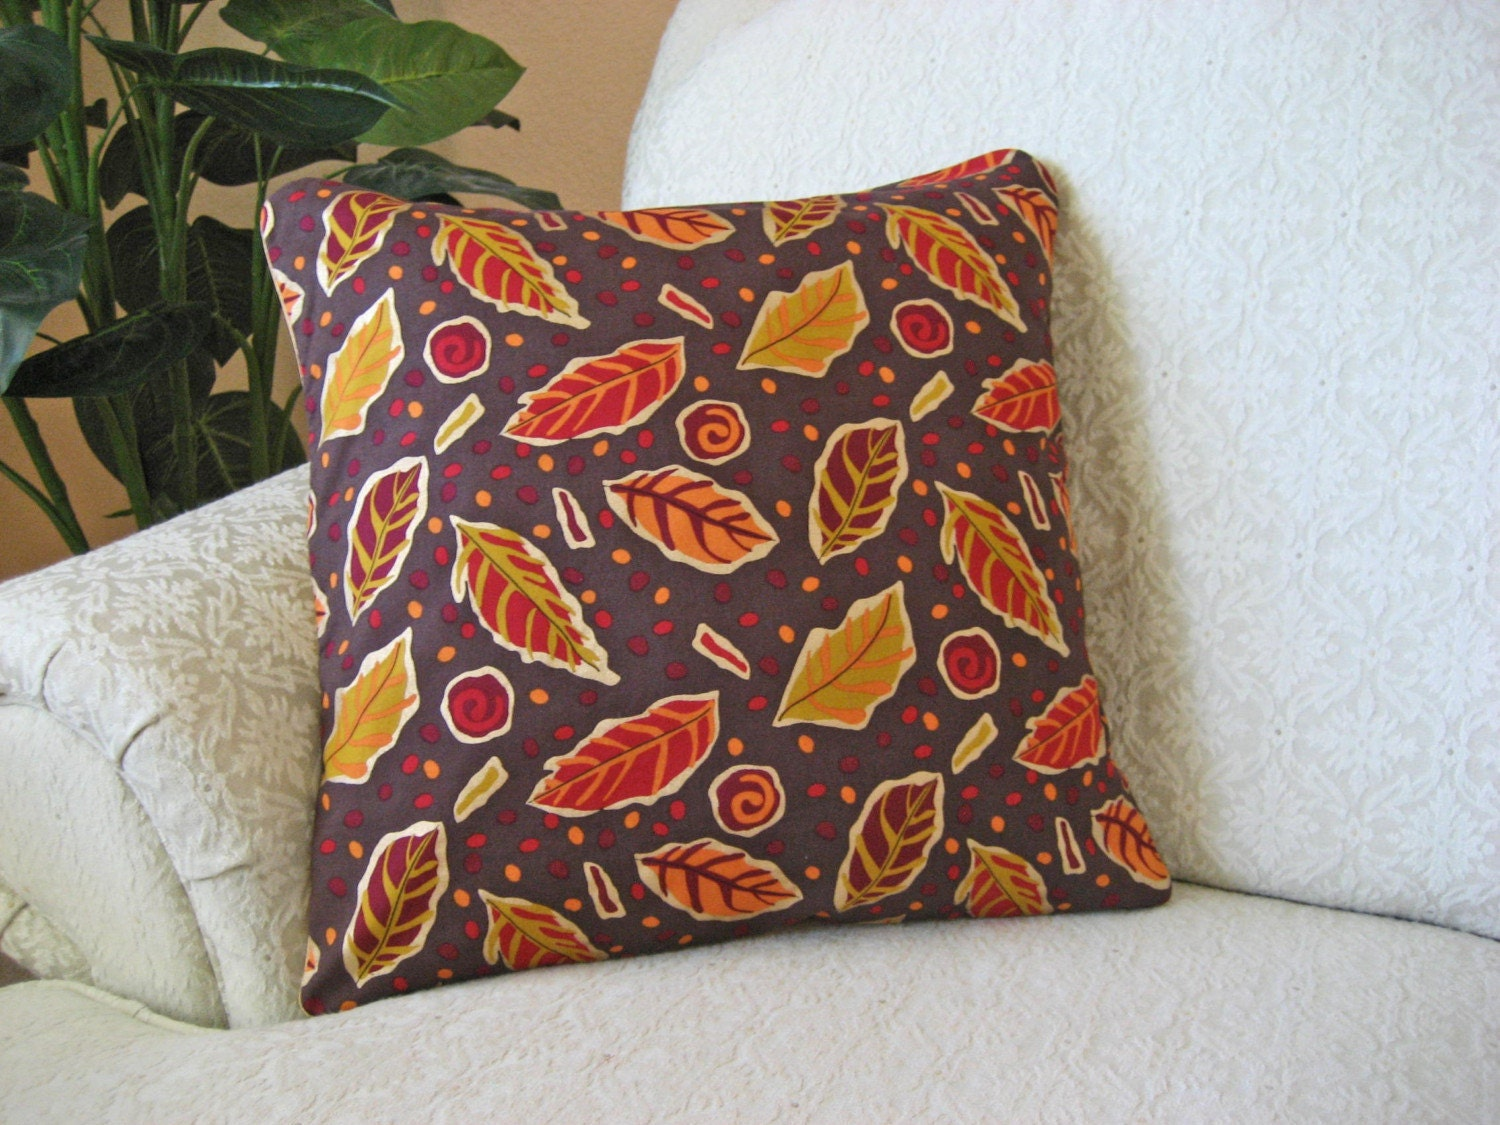 Eggplant Colored Throw Pillows : Fall Autumn Throw Pillow Cover Mustard Yellow Eggplant Purple